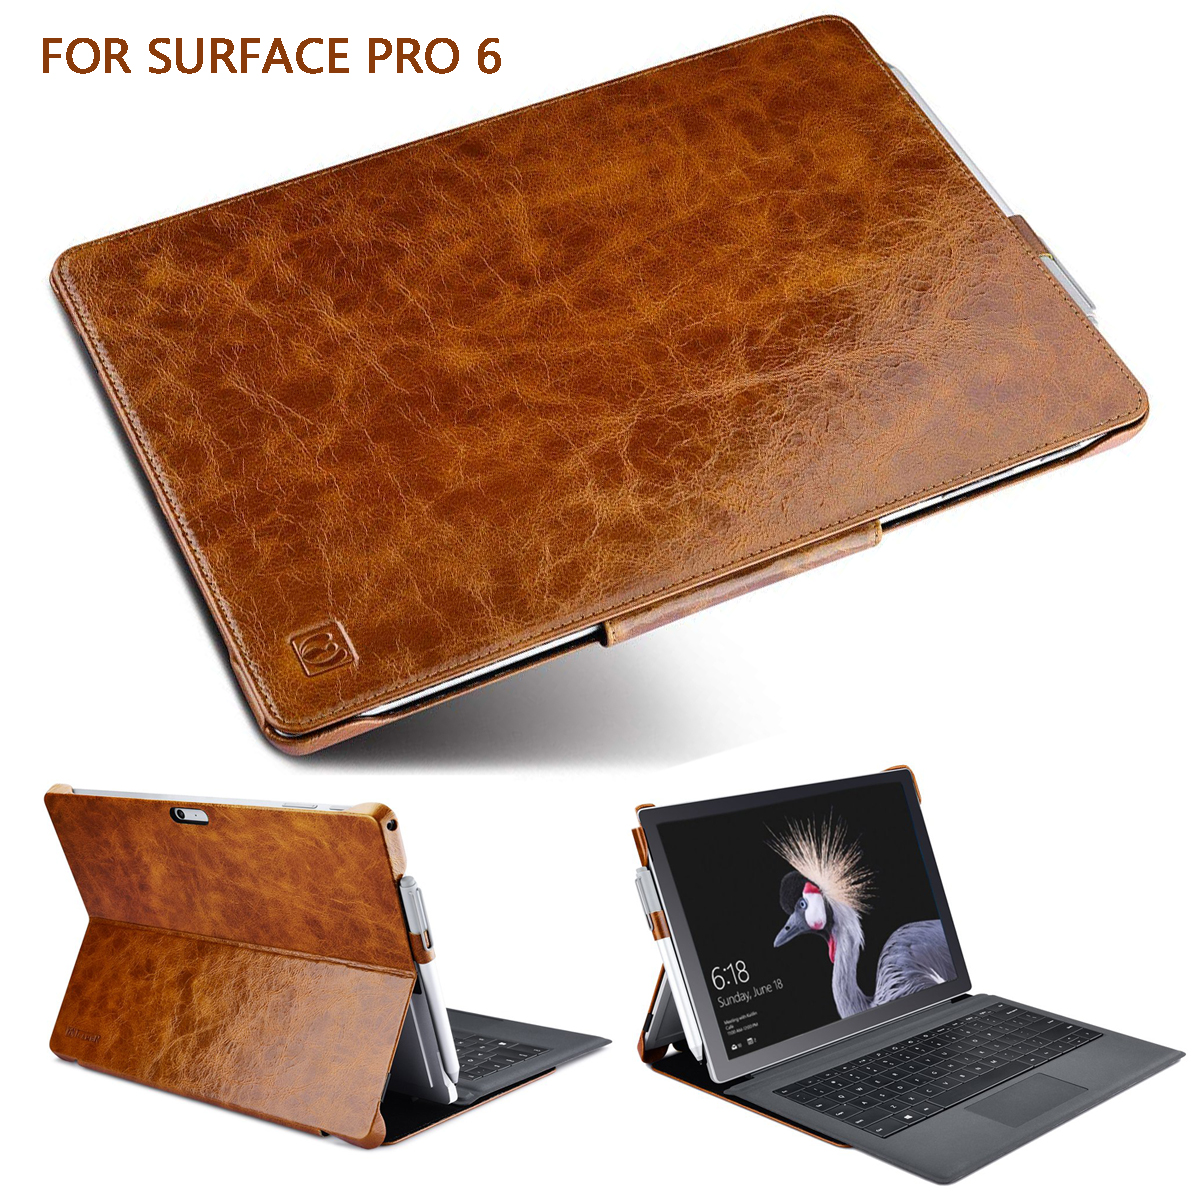 Oil Wax Genuine Leather Case for Microsoft Surface Pro 6/New Surface Pro 2017 Magnetic Snap Kickstand Smart Wake/ Sleep Pen LoopOil Wax Genuine Leather Case for Microsoft Surface Pro 6/New Surface Pro 2017 Magnetic Snap Kickstand Smart Wake/ Sleep Pen Loop